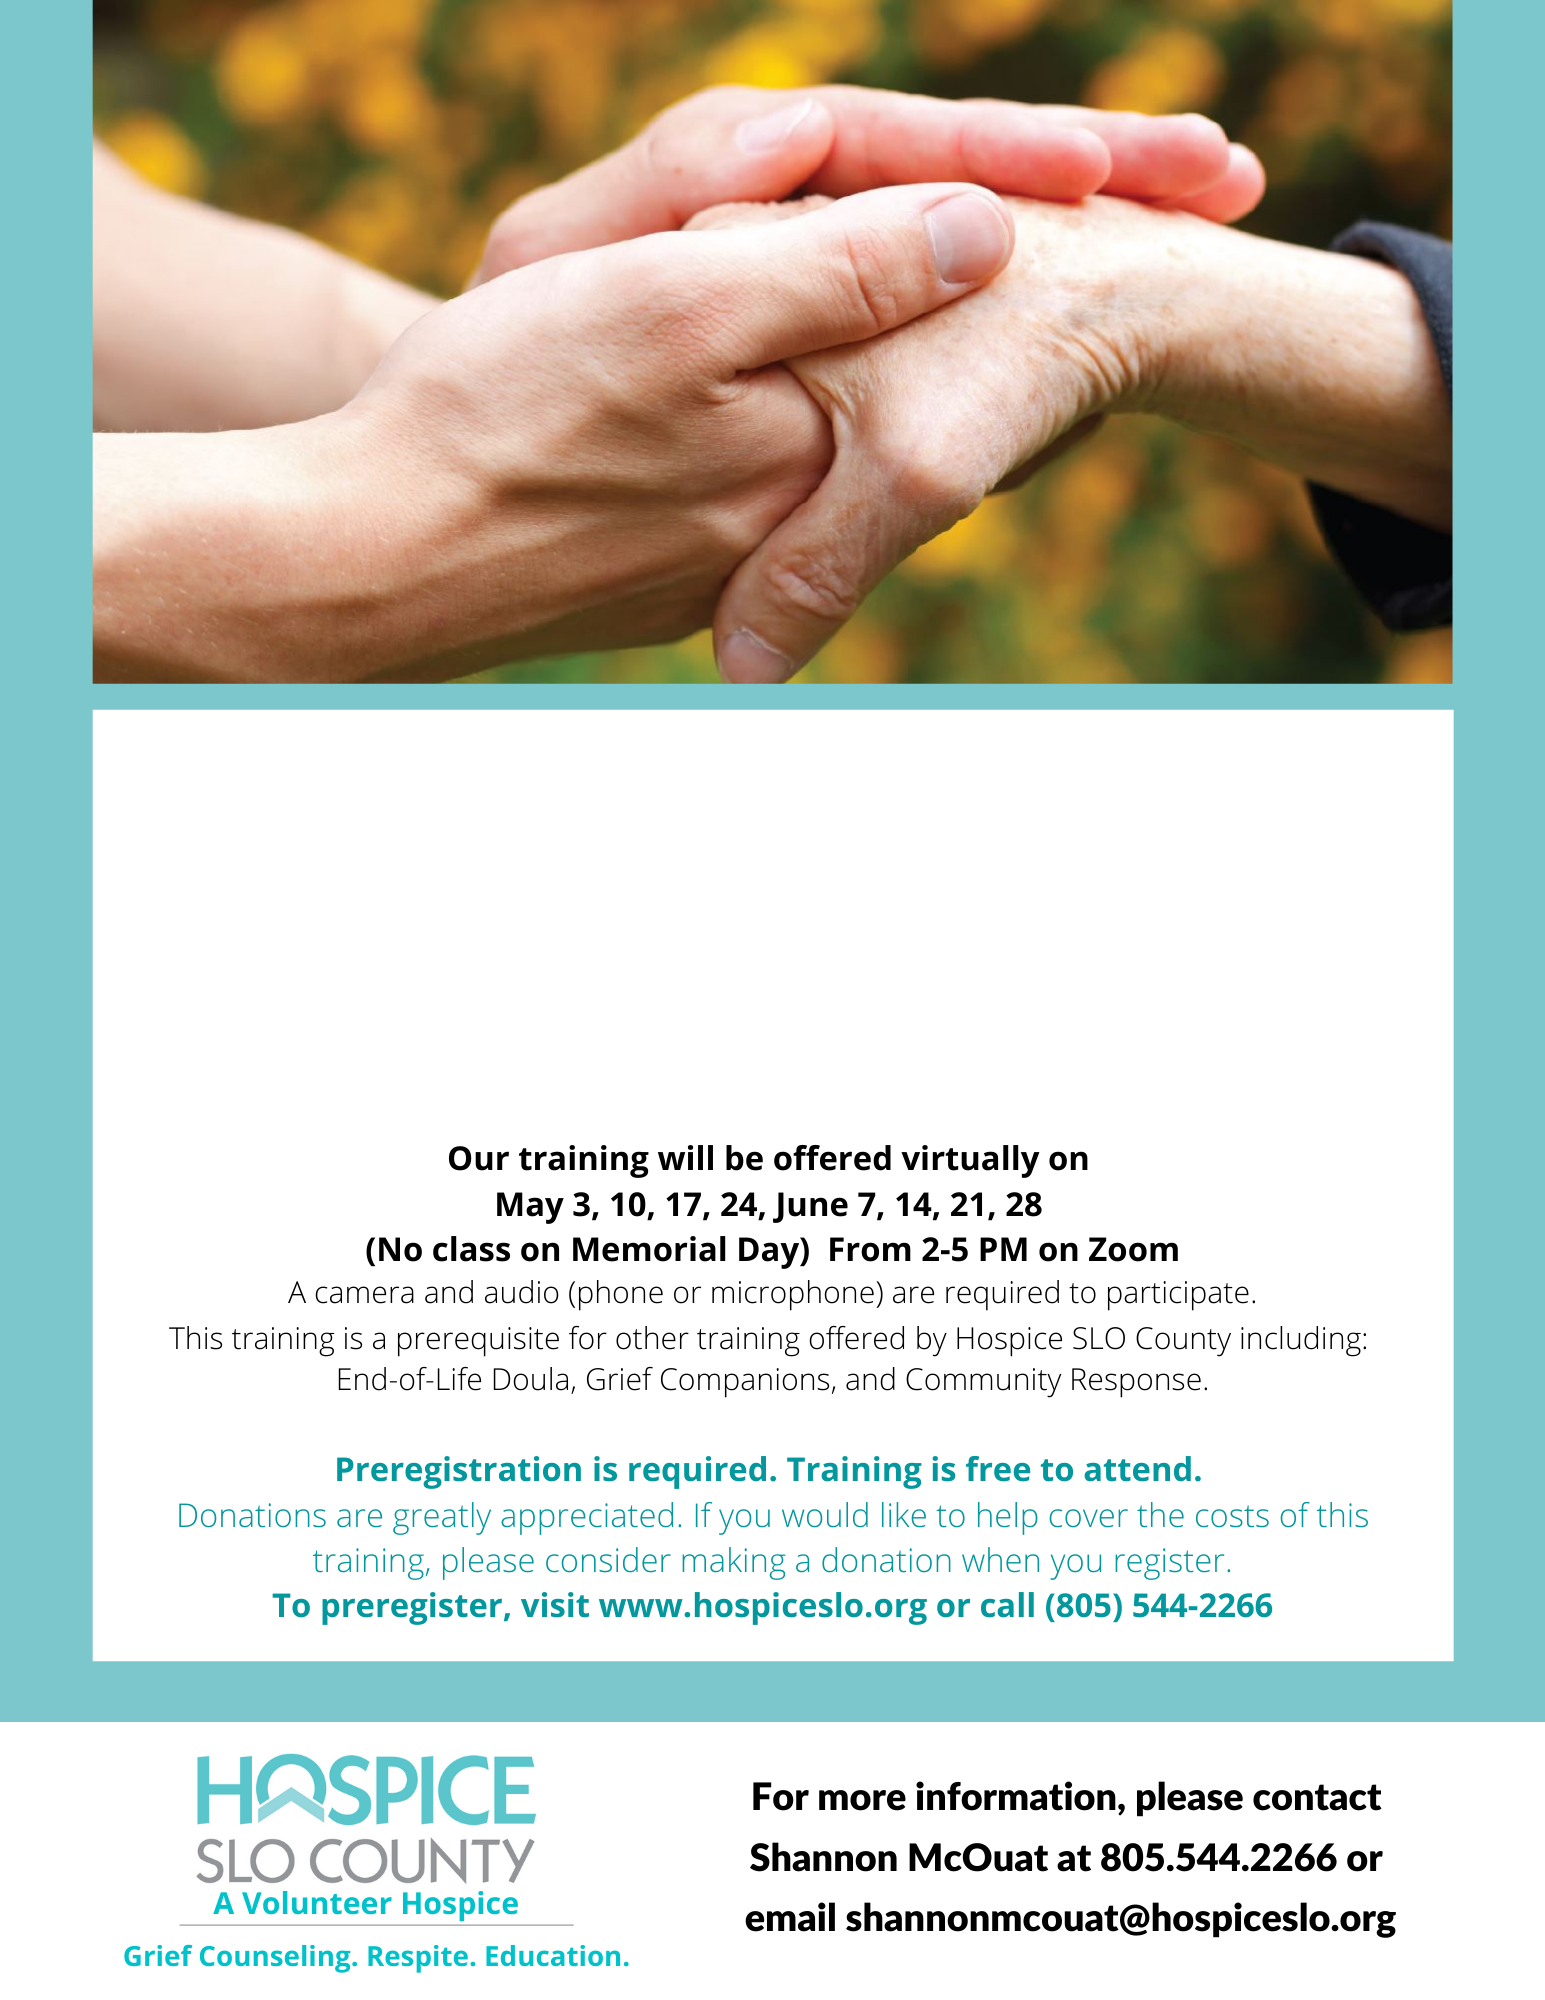 Hospice SLO County In-Home Volunteer Training Sept 2021 image